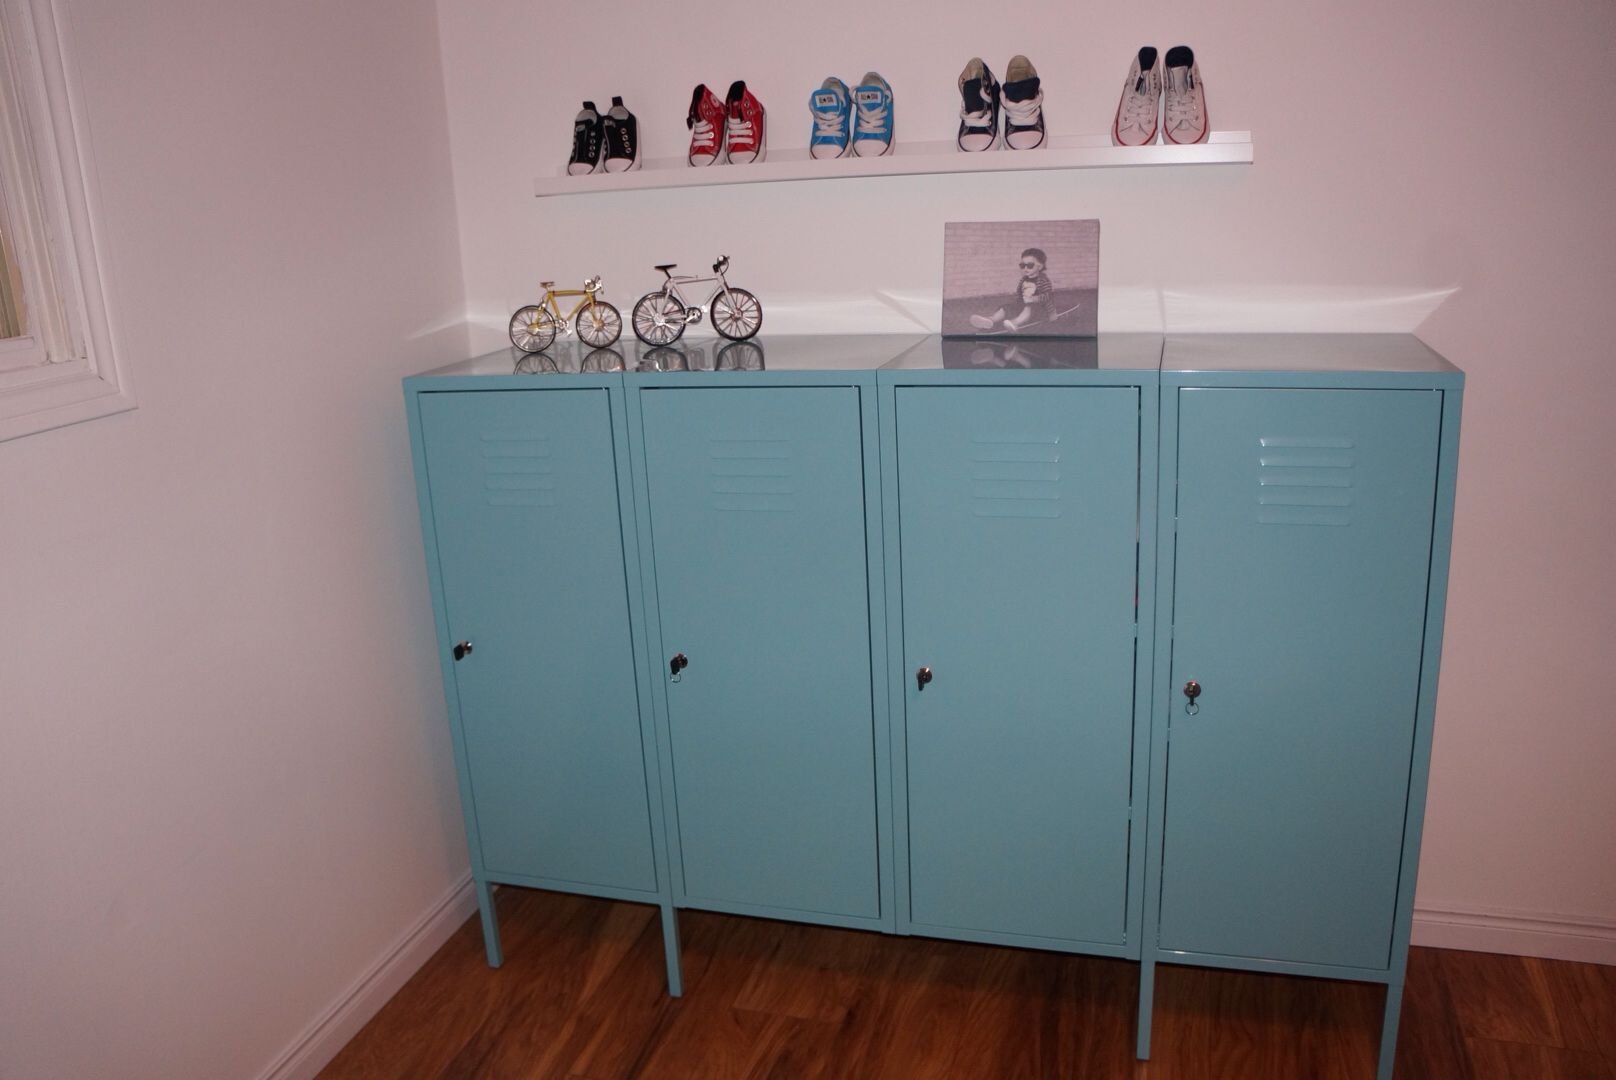 ikea ps cabinet hack painted furniture pinterest ikea hacks ikea ps and ikea ps cabinet. Black Bedroom Furniture Sets. Home Design Ideas